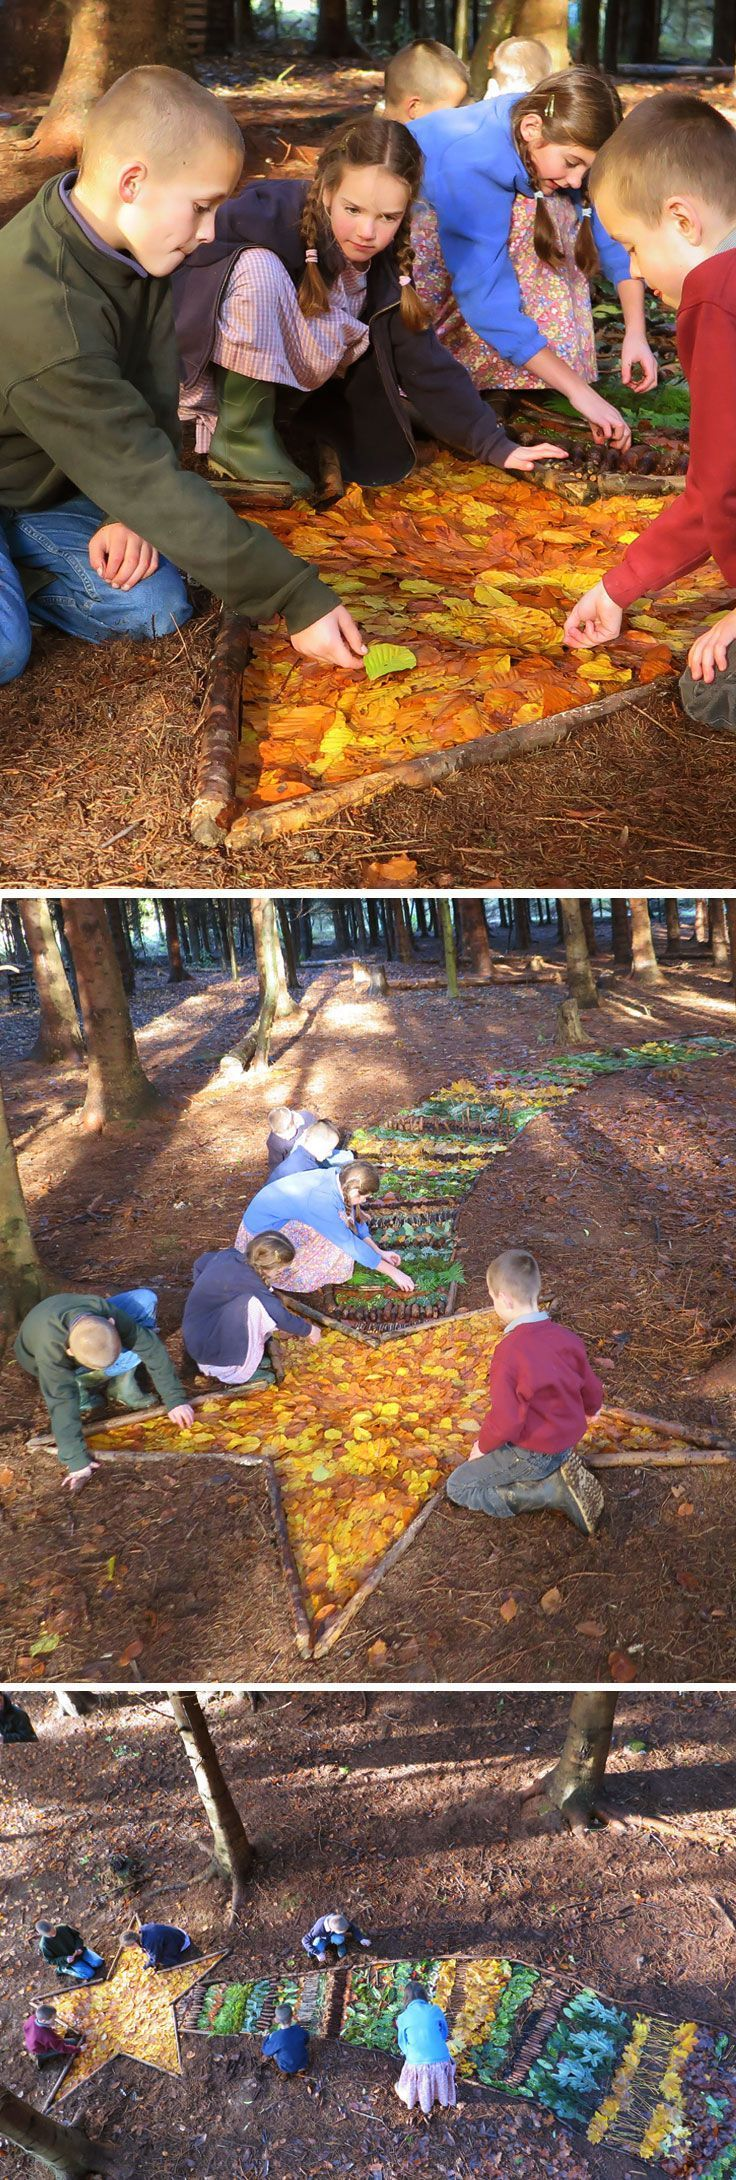 Look what these children made with just sticks and leaves! What a great way to take creativity outdoors.